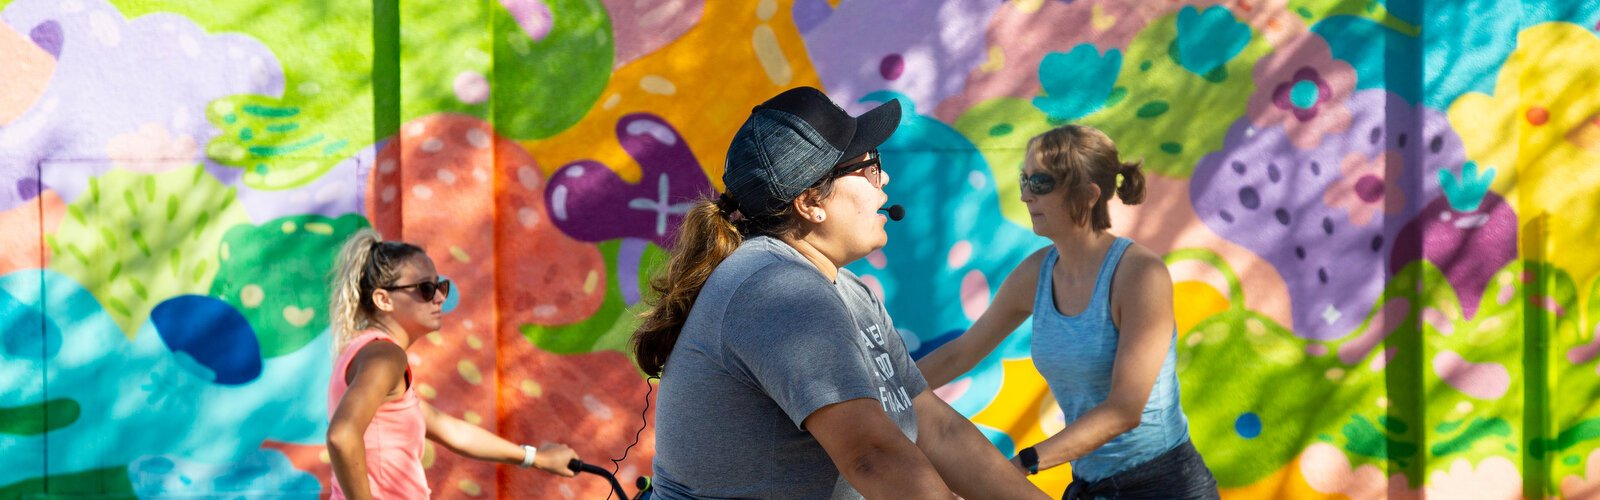 Riki Tarr, left, Monica DeChaine, and Hillary Hepp check out art by Jujmo, a Tampa Bay muralist known for her happy colors and cartoon-like style.